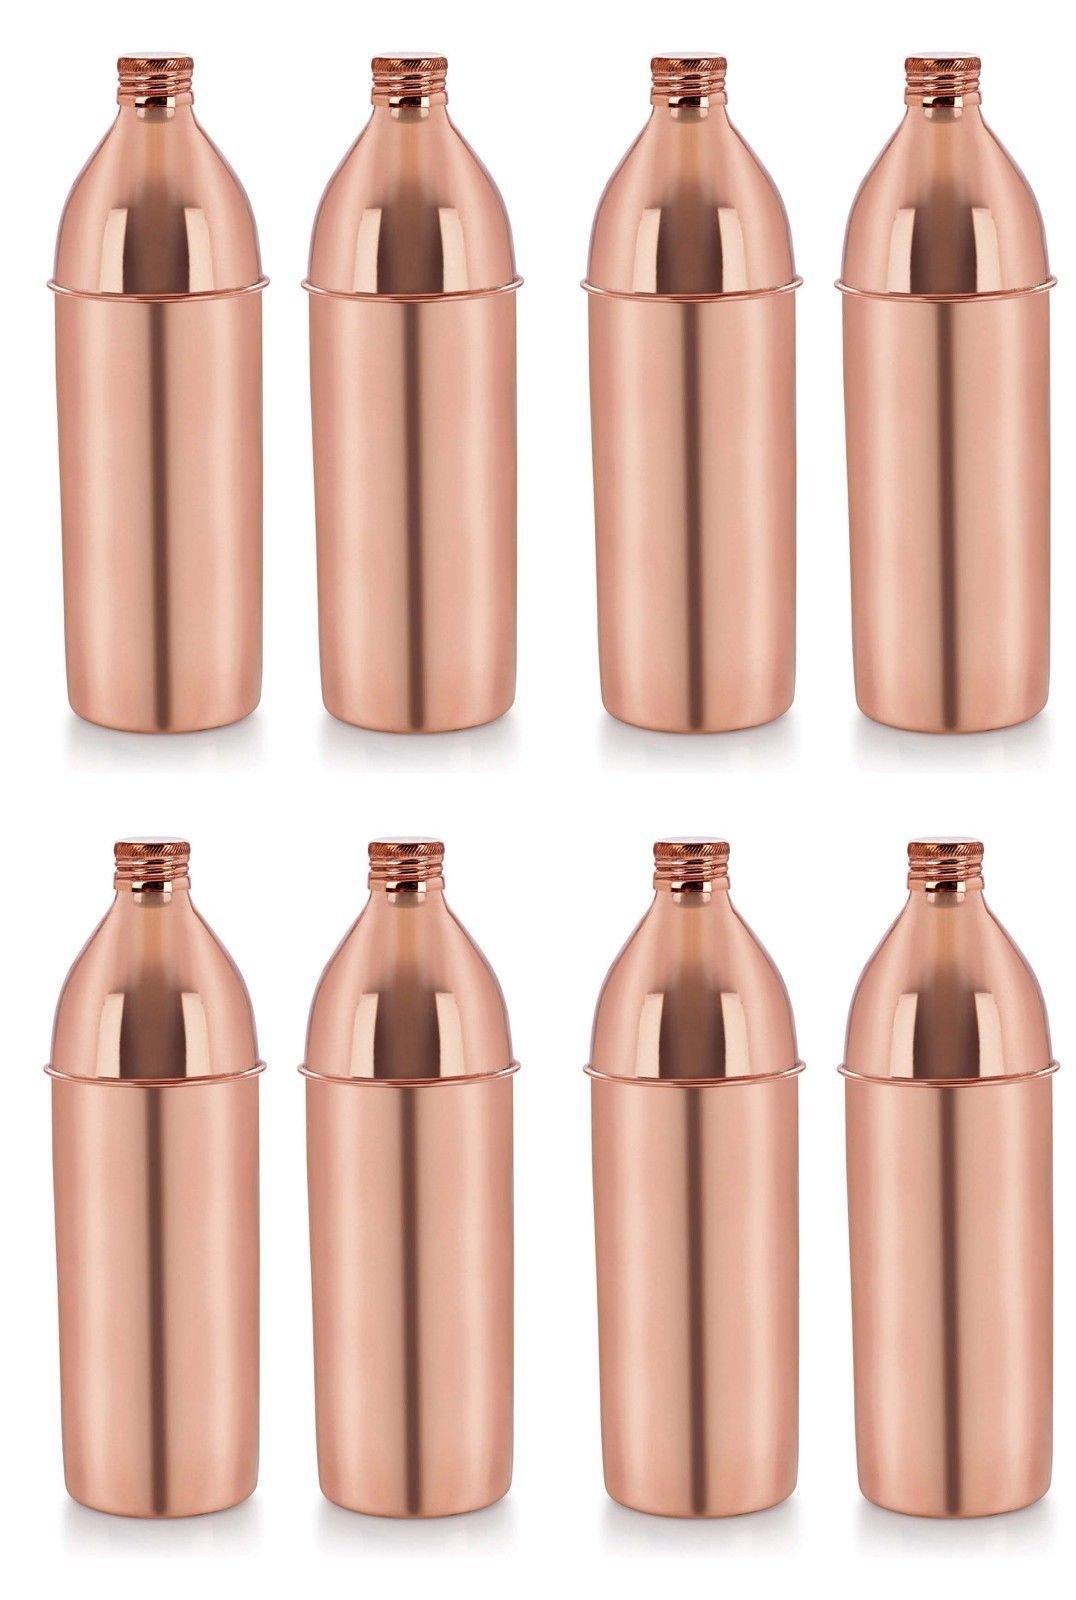 Dadu_creation Best Quality Pure Copper 8 Bottle set 1000 ML Water Bottle For Health Benefits